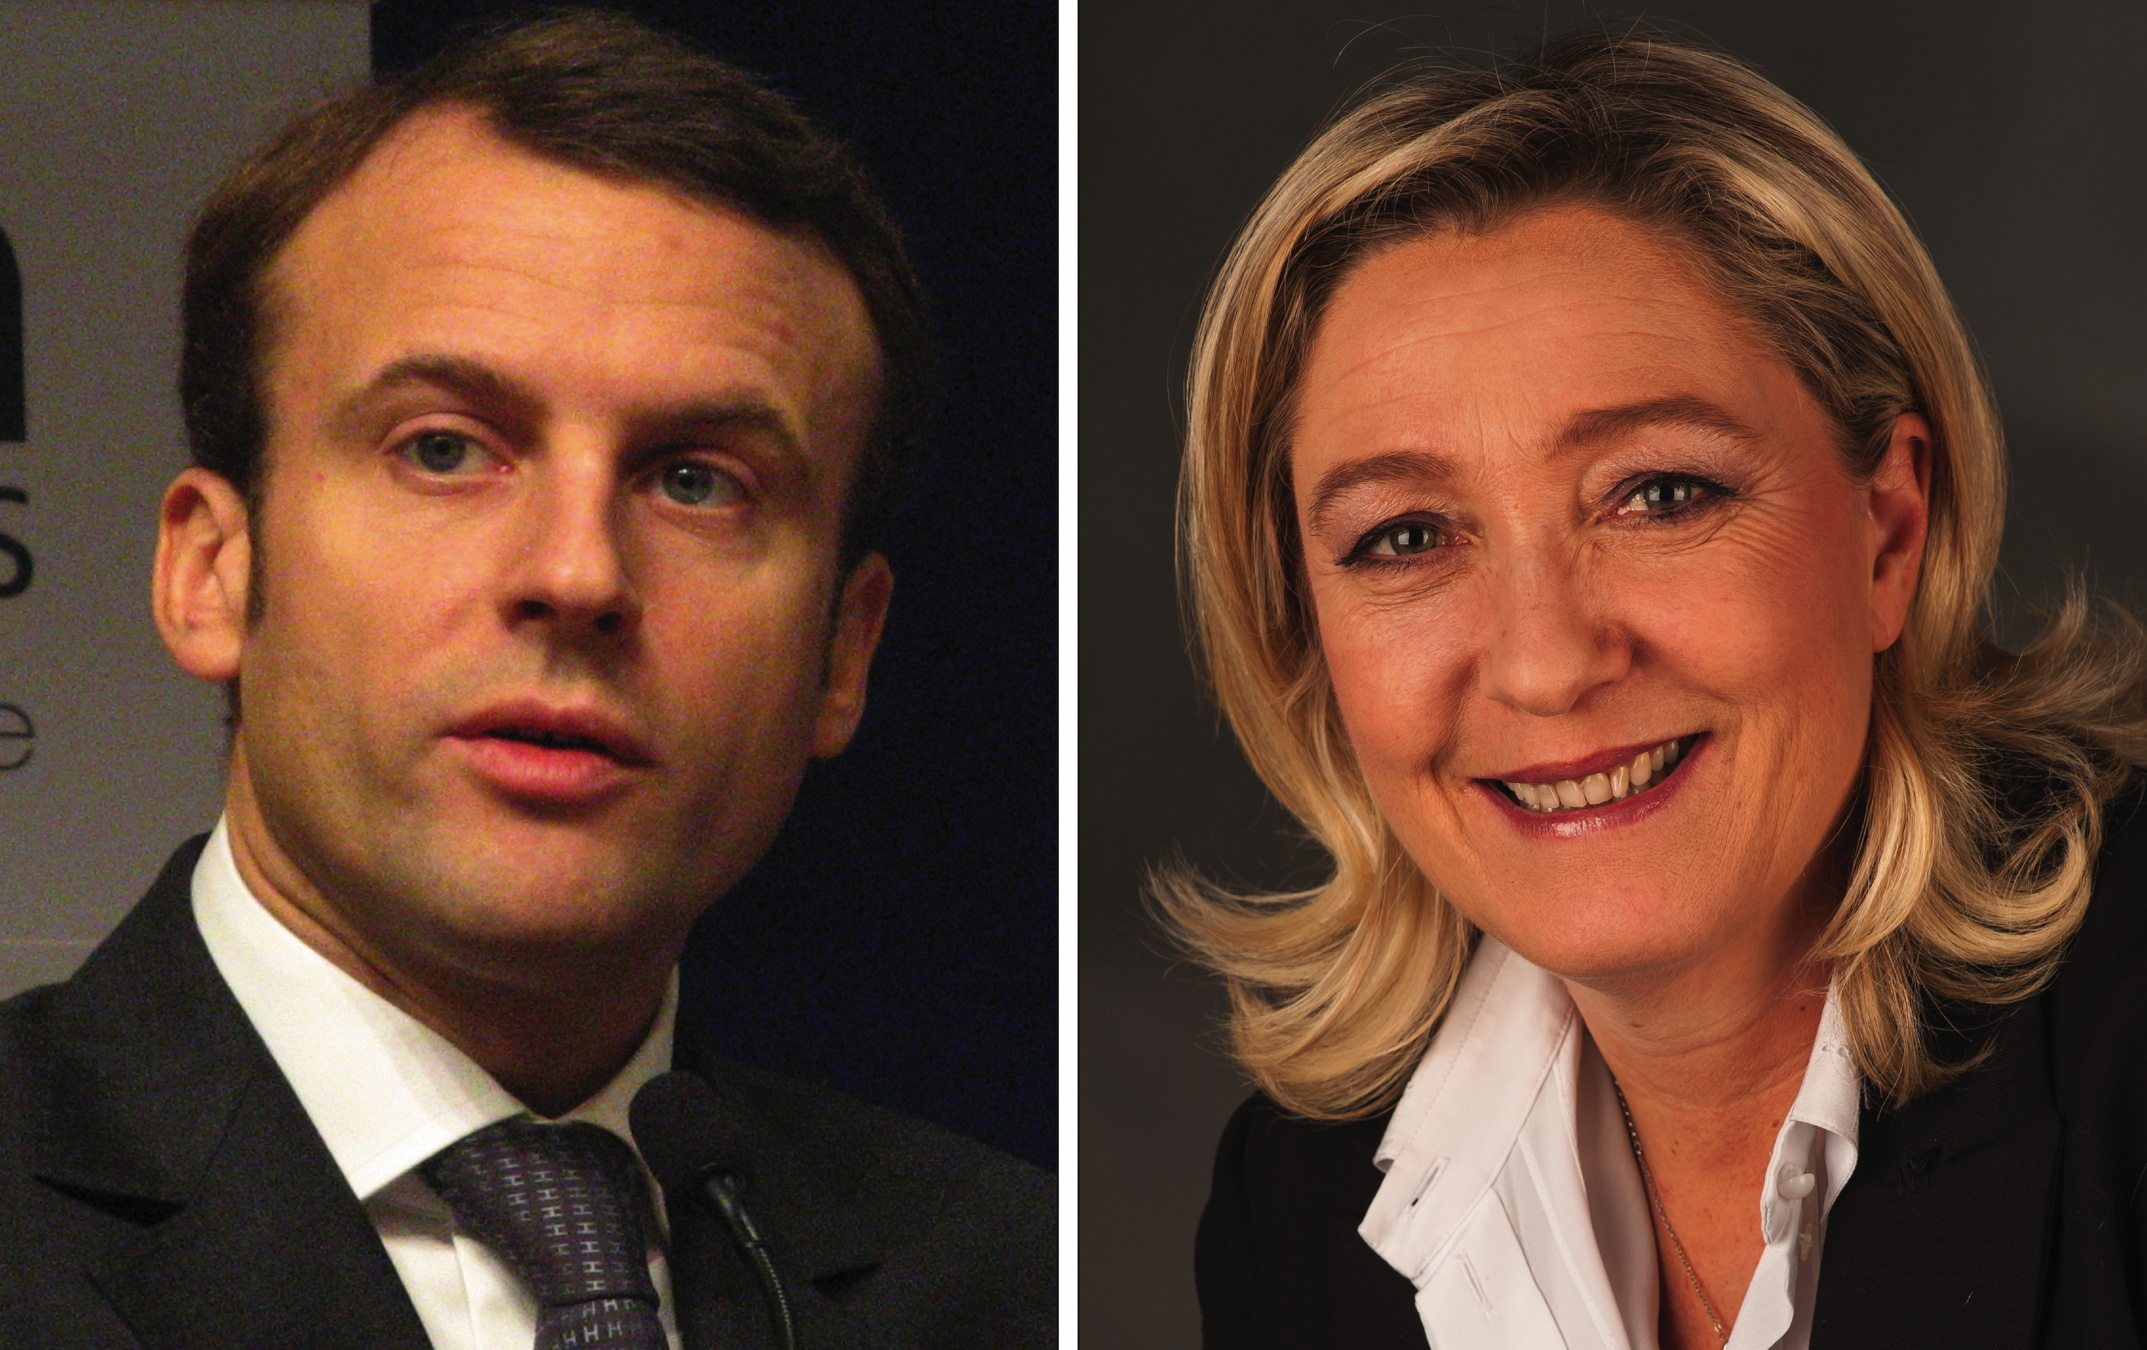 https://upload.wikimedia.org/wikipedia/commons/d/df/Macron_%26_Le_Pen.jpg